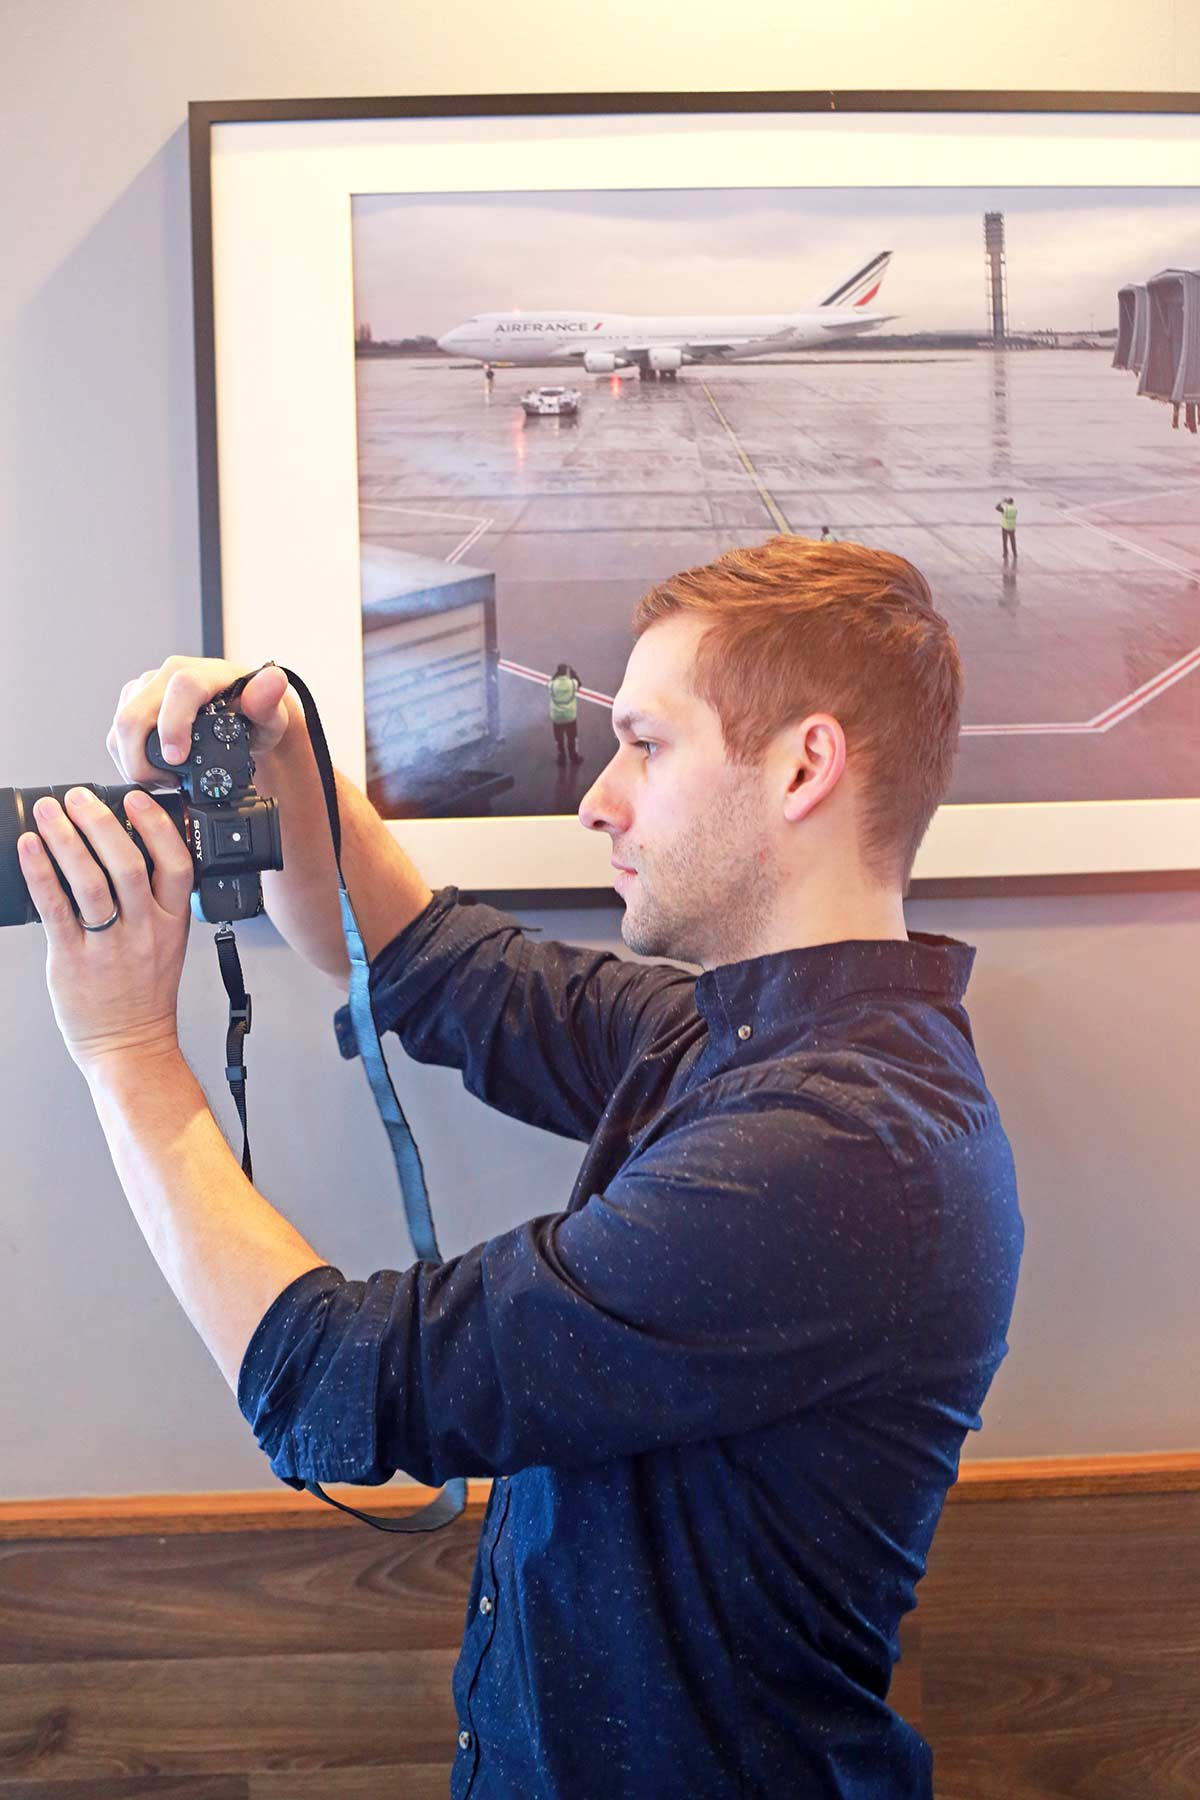 A photo of John Wisniewski taking photos at Daily Projects Cafe in Algonquin, IL.